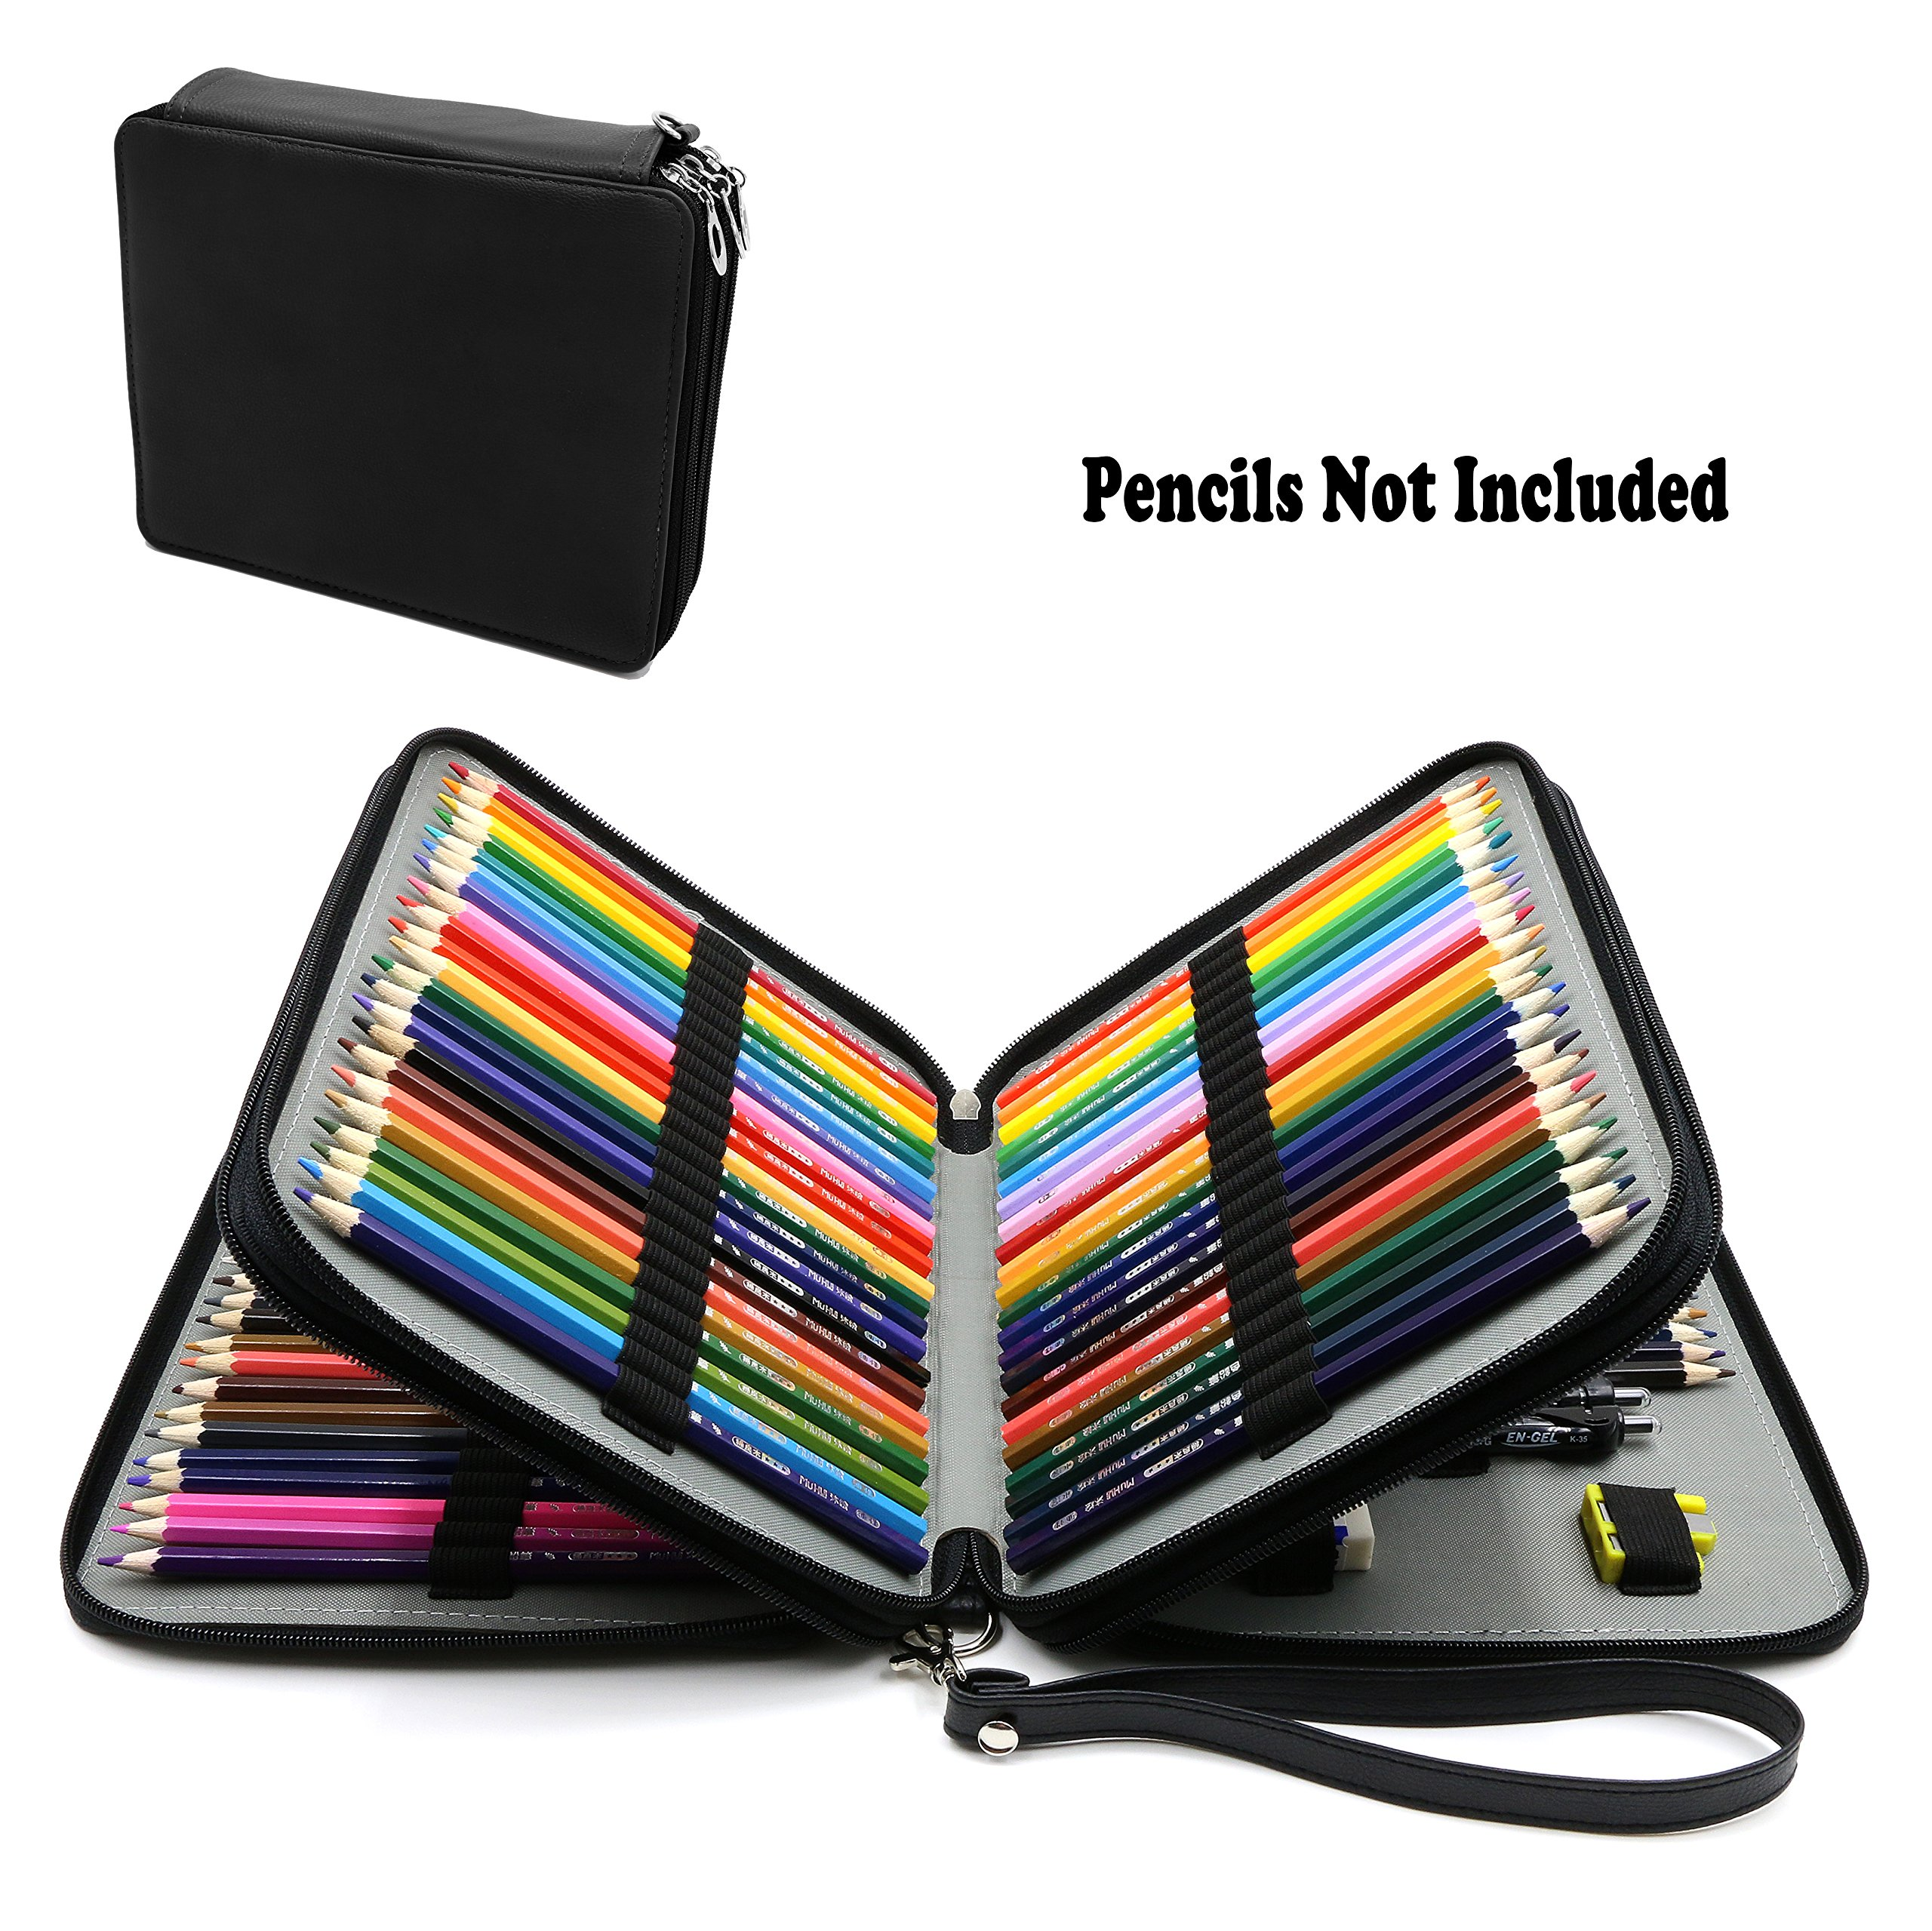 120 Slots Pencil Case – PU Leather Large Capacity Multi-layer Pencil Holder Zipper Pen Bag for Prismacolor Watercolor Pencils, Colored Pencil By WeiBonD (Black)